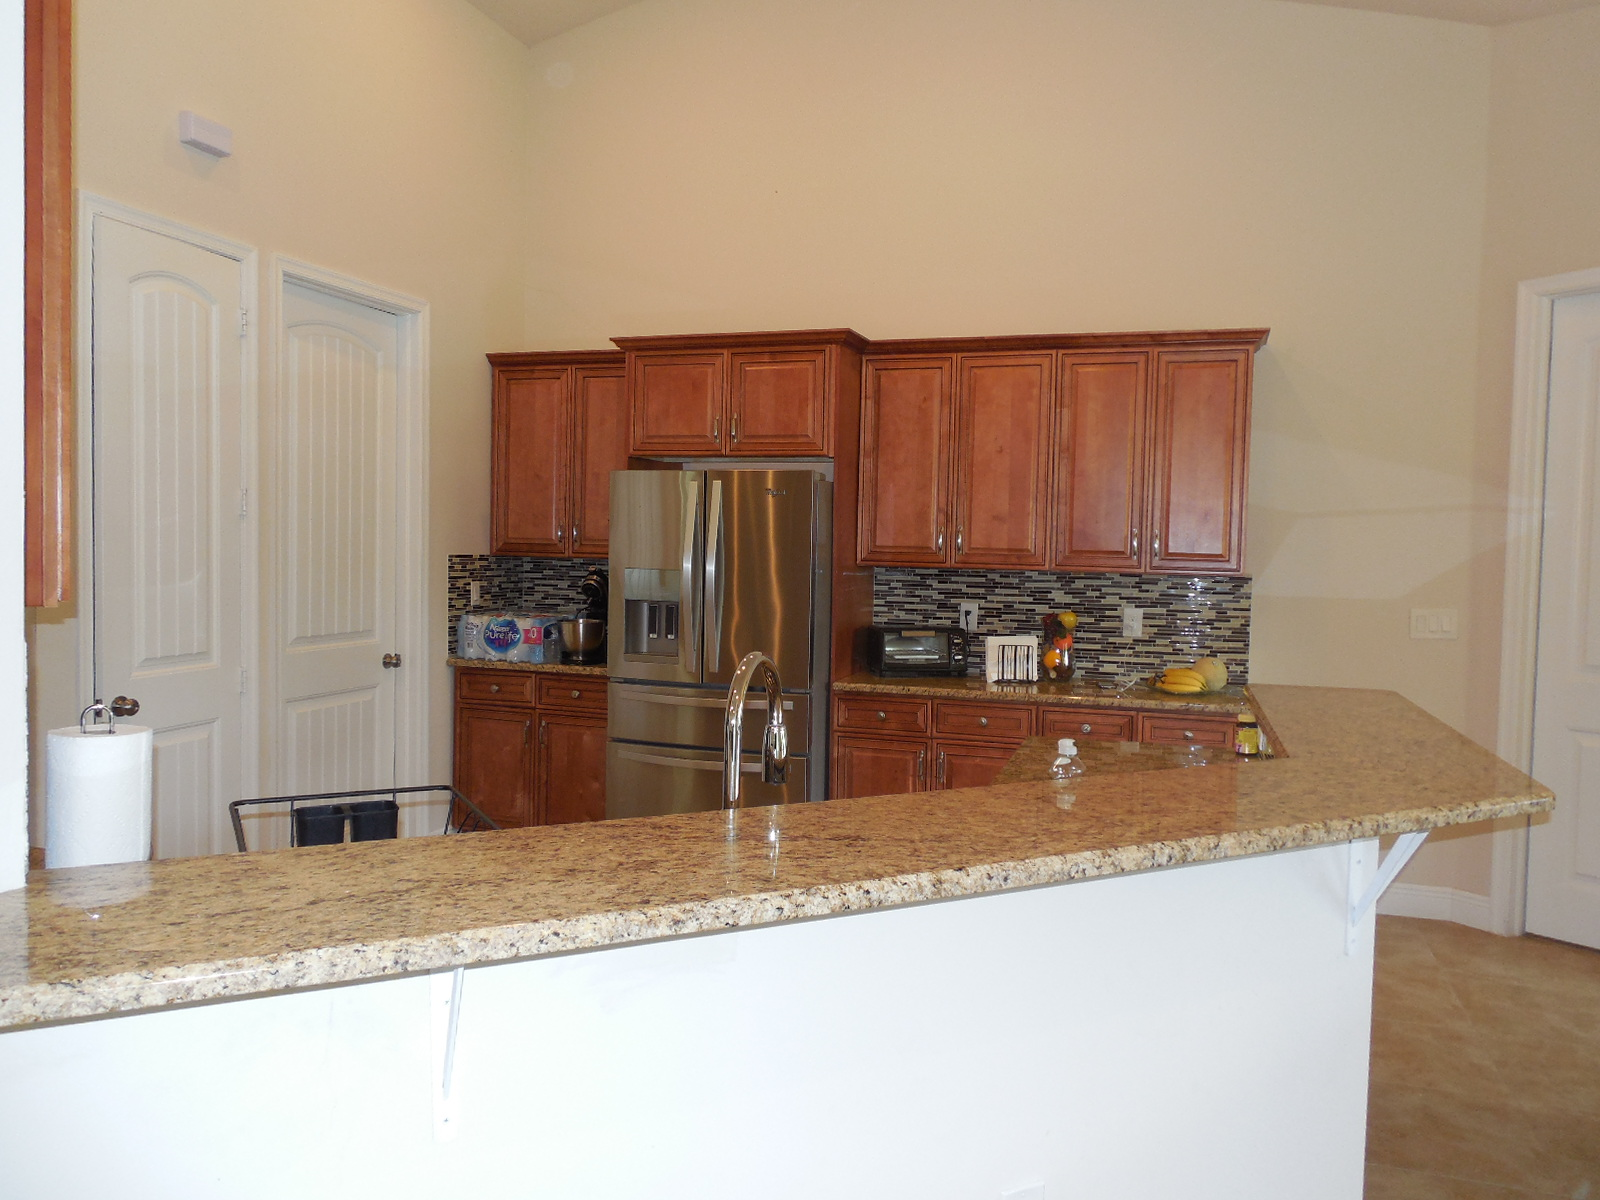 Homes for sale in port st lucie fl 4 bedroom 3 bath - 3 bedroom 3 bathroom homes for sale ...